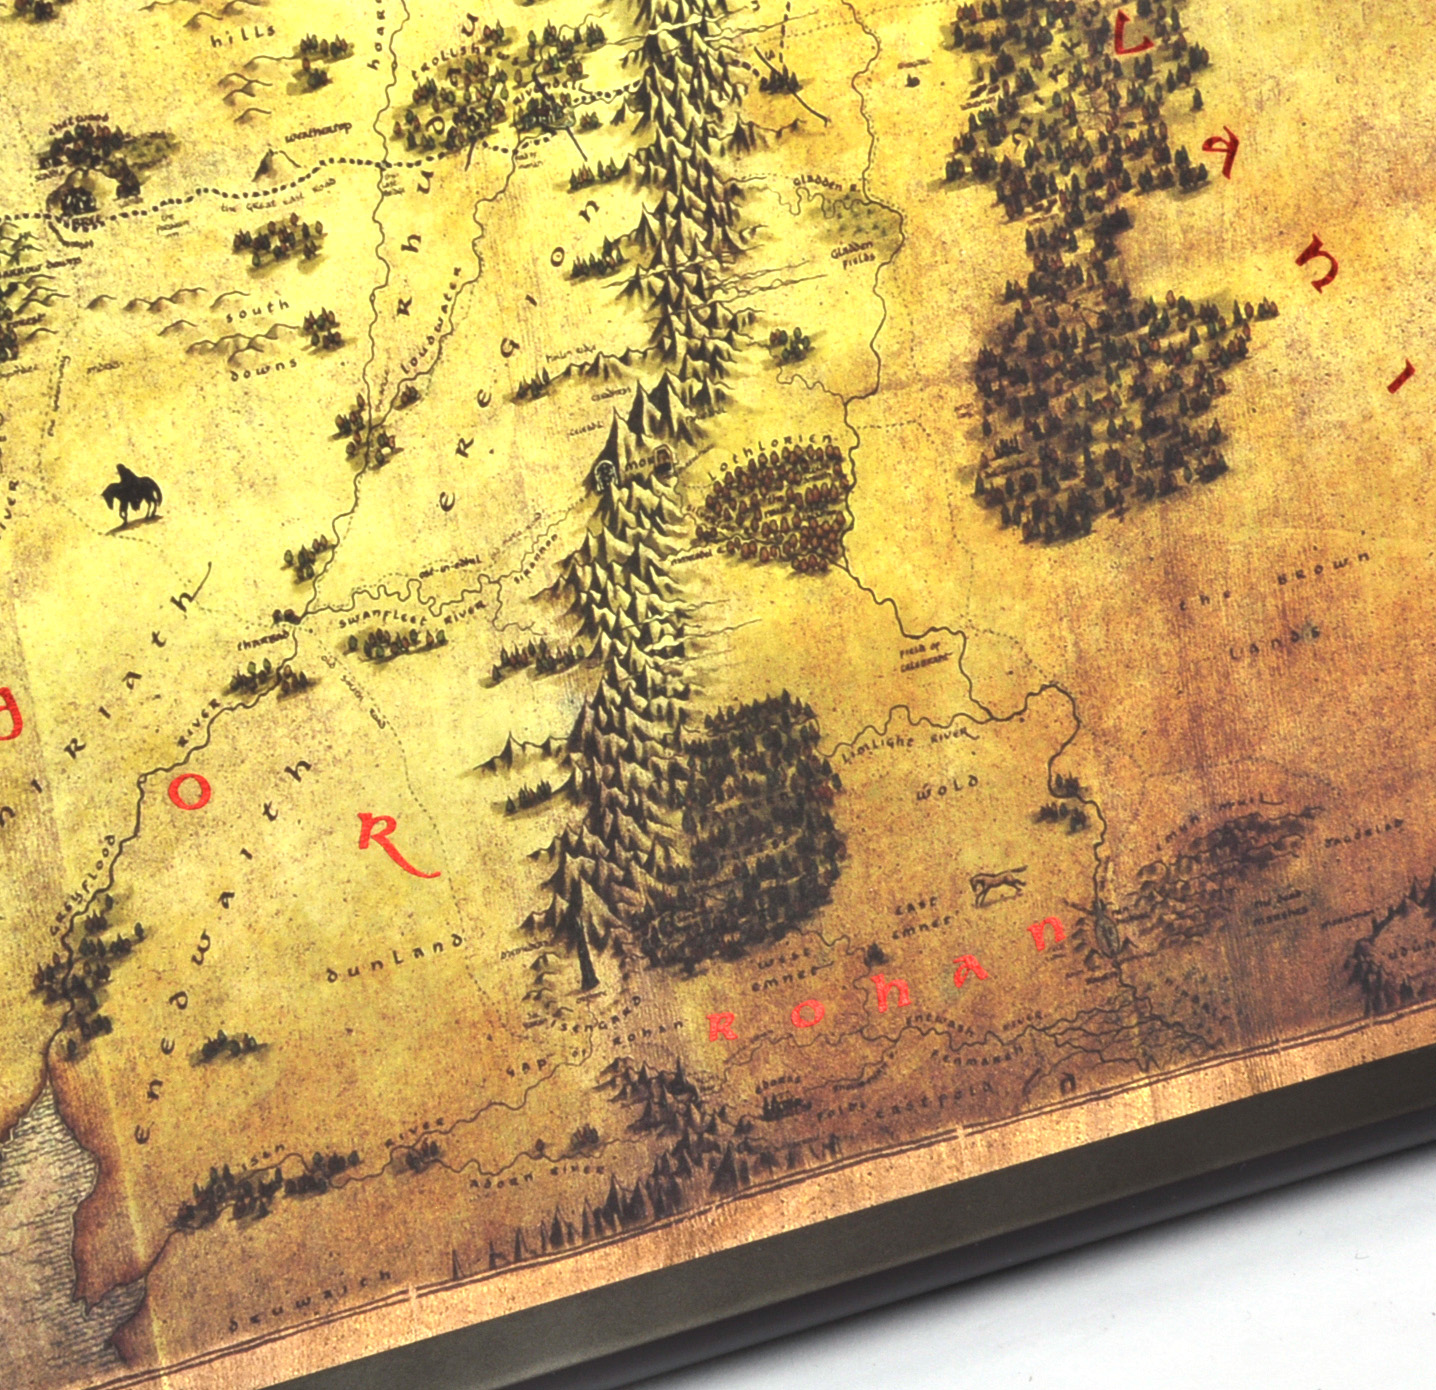 The Hobbit Middle Earth Map by The Noble Collection on bilbo's map, hobbit rivendell map, hobbit battle map, hobbit hobbiton map, thorin oakenshield map, hobbit elves map, the hobbit map, printable hobbit map, hobbit book map, hobbit journey map, hobbit map wallpaper, hobbit bilbo and thorin, hobbit azog figure, the one ring map, hobbit misty mountains map, thorin's map, lego hobbit map, hobbit kom map, lonely mountain map,